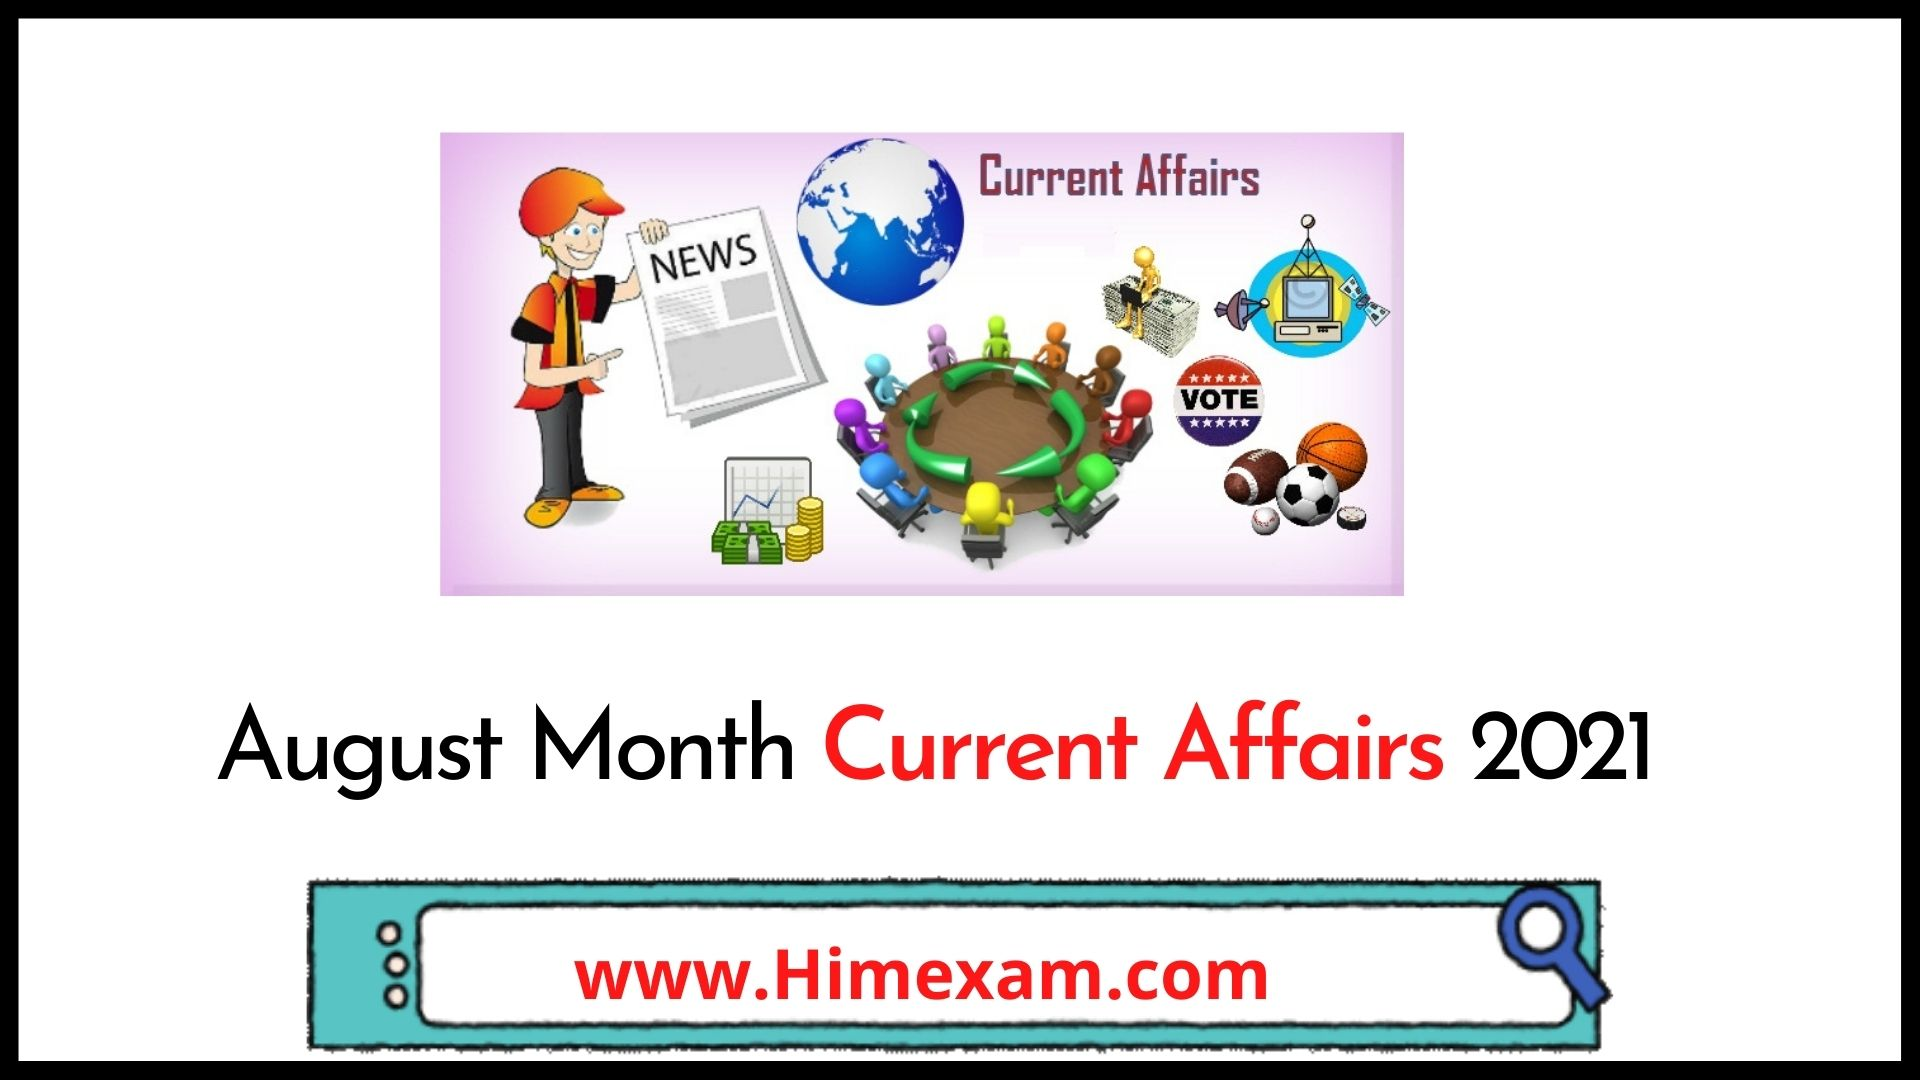 August Month Current Affairs 2021